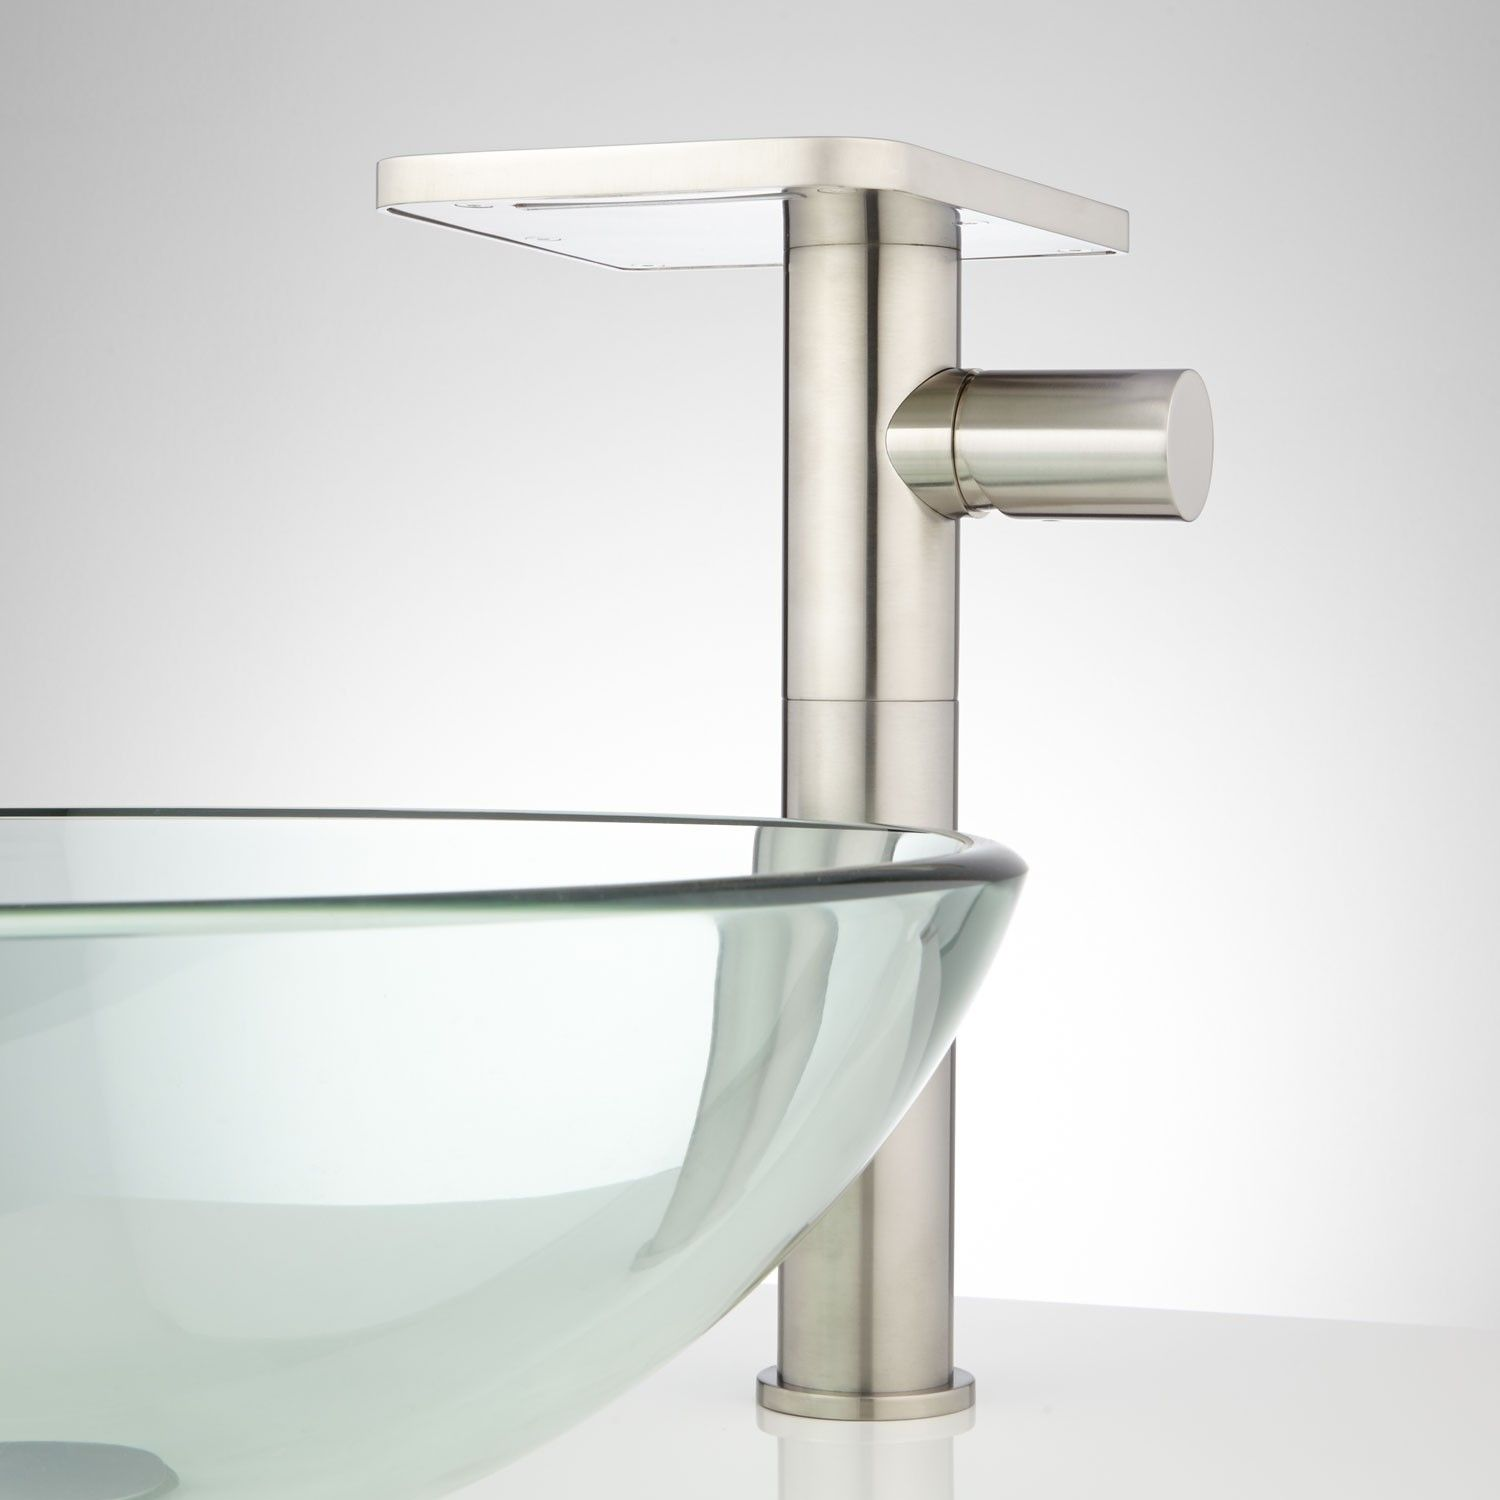 Knox Waterfall Vessel Faucet with Pop-Up Drain | Vessel faucets ...